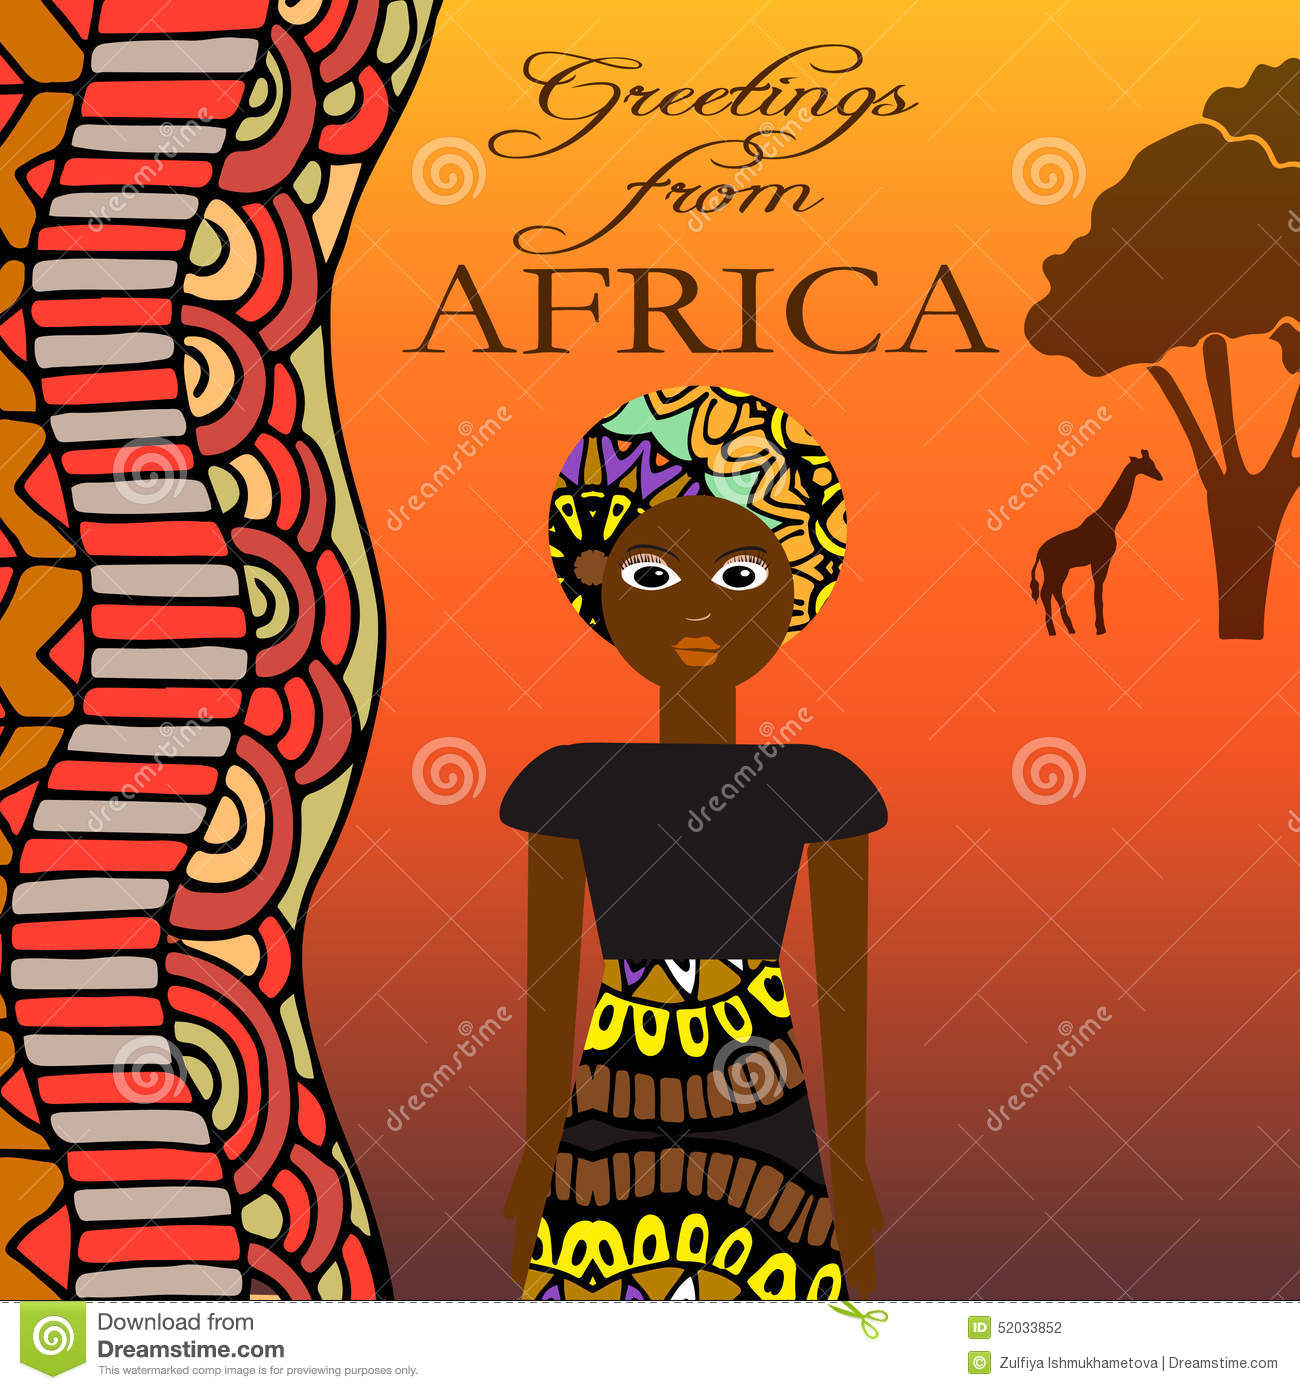 Greeting from africa illustration with pretty woman african download greeting from africa illustration with pretty woman african ornaments and elements stock m4hsunfo